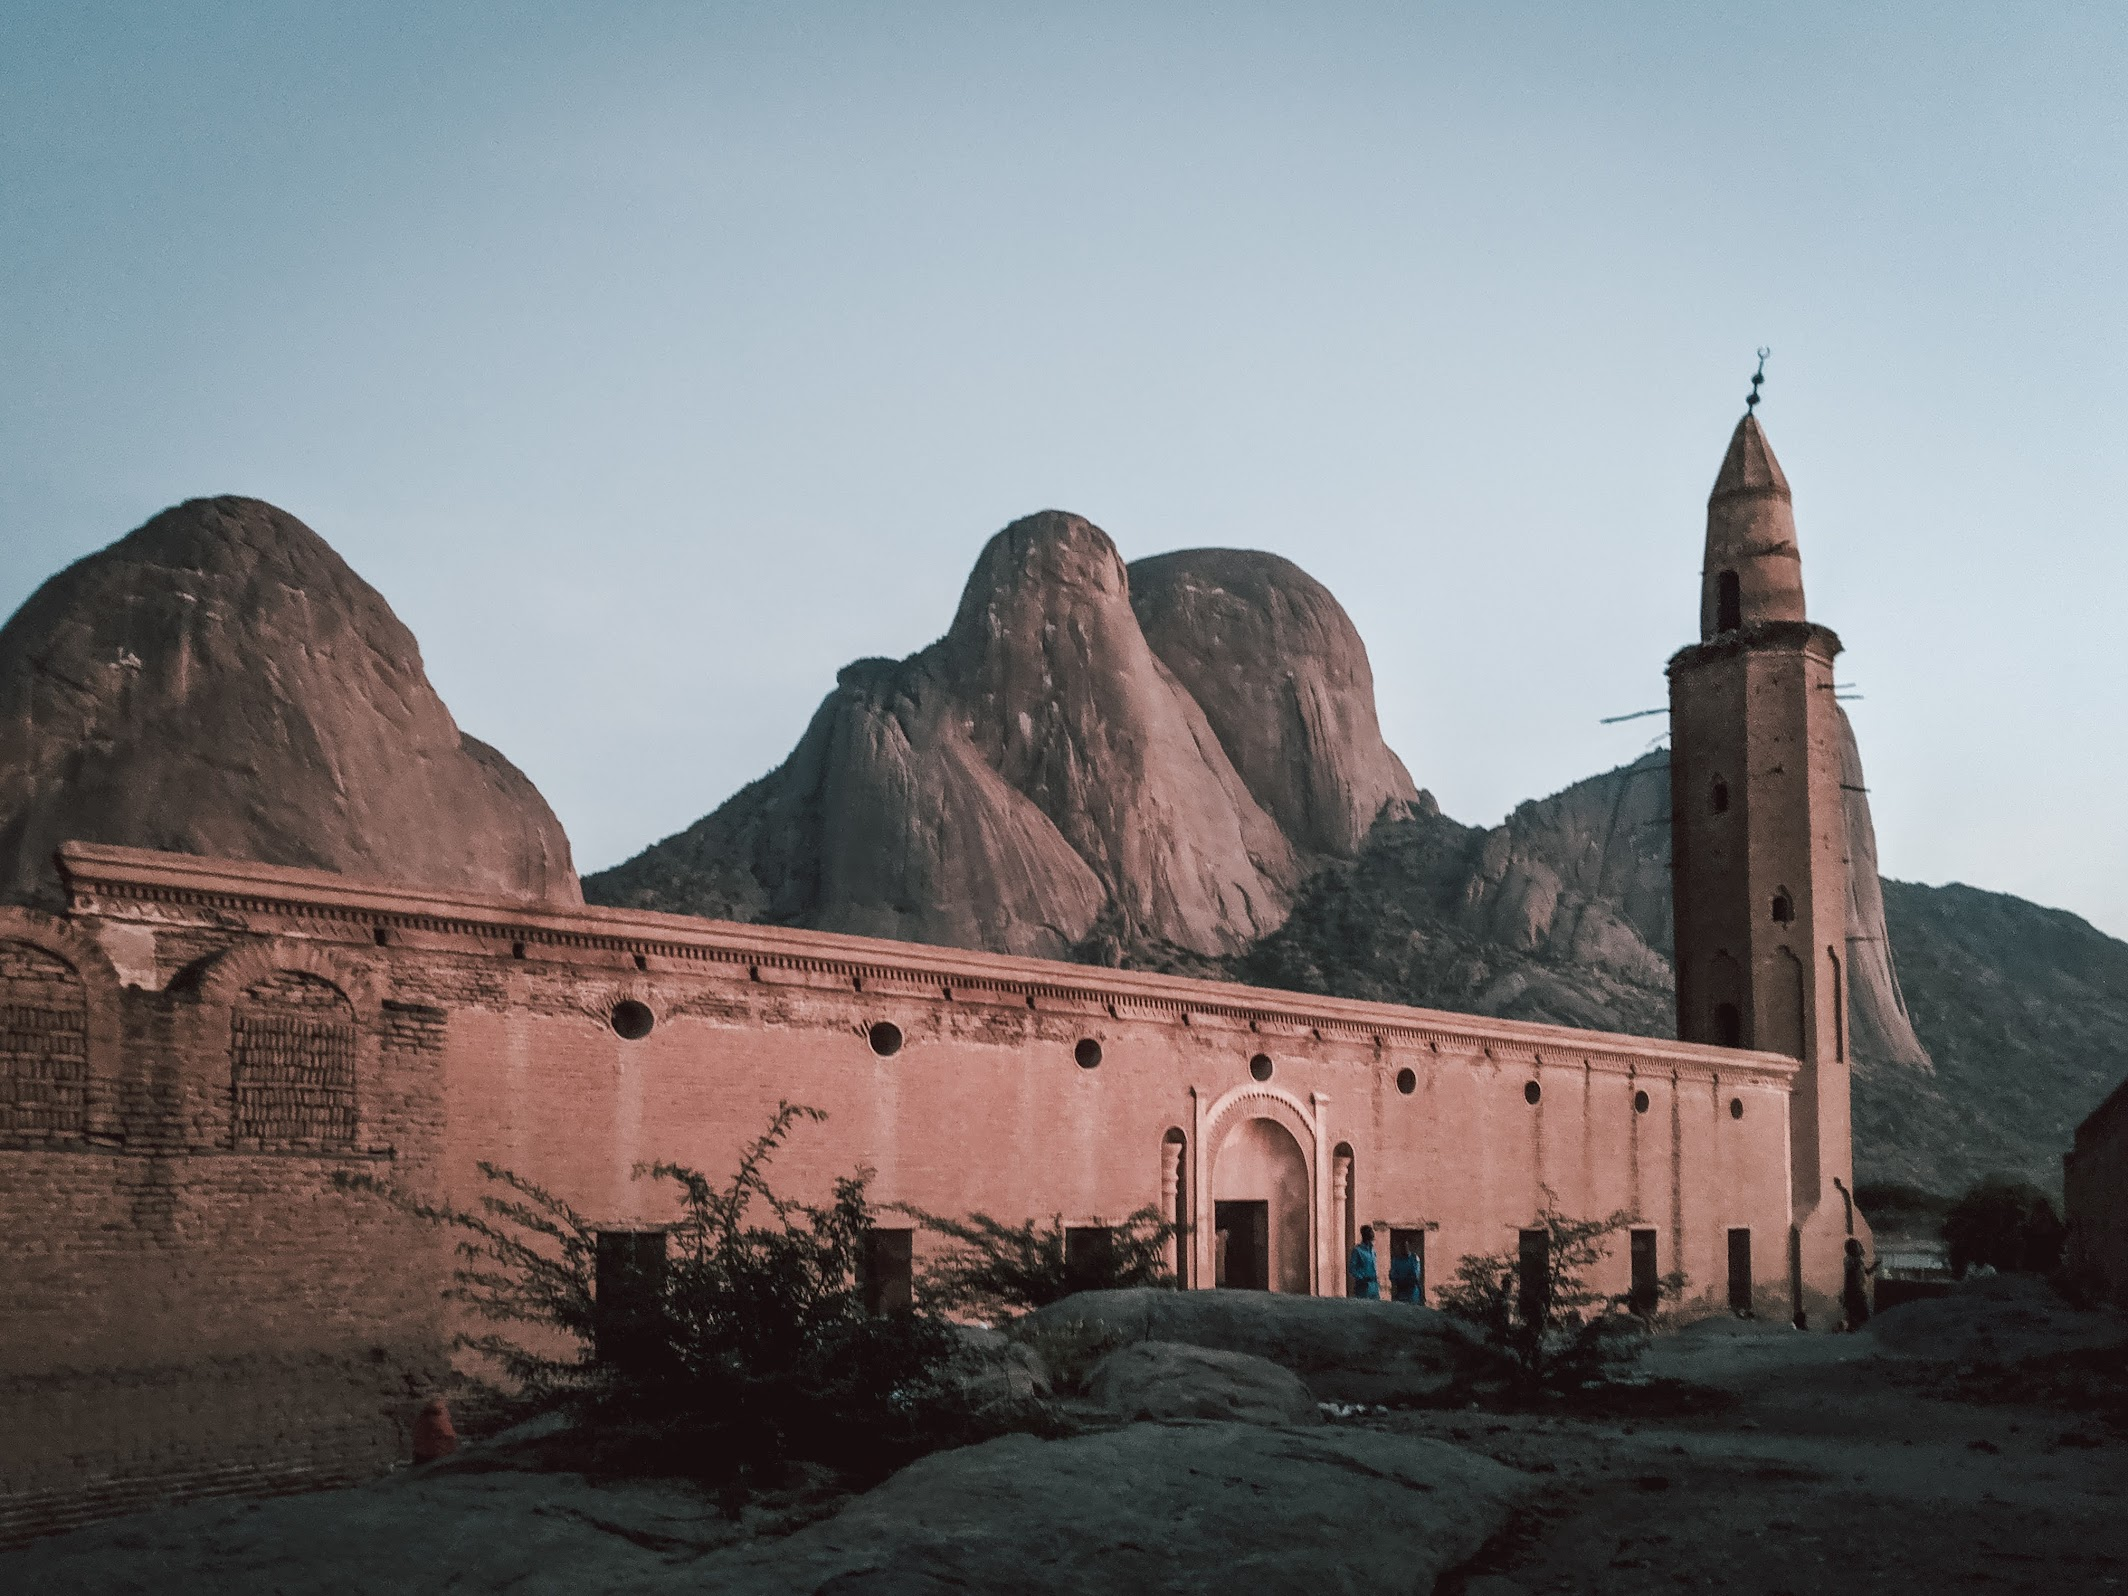 Kassala mosque at dusk